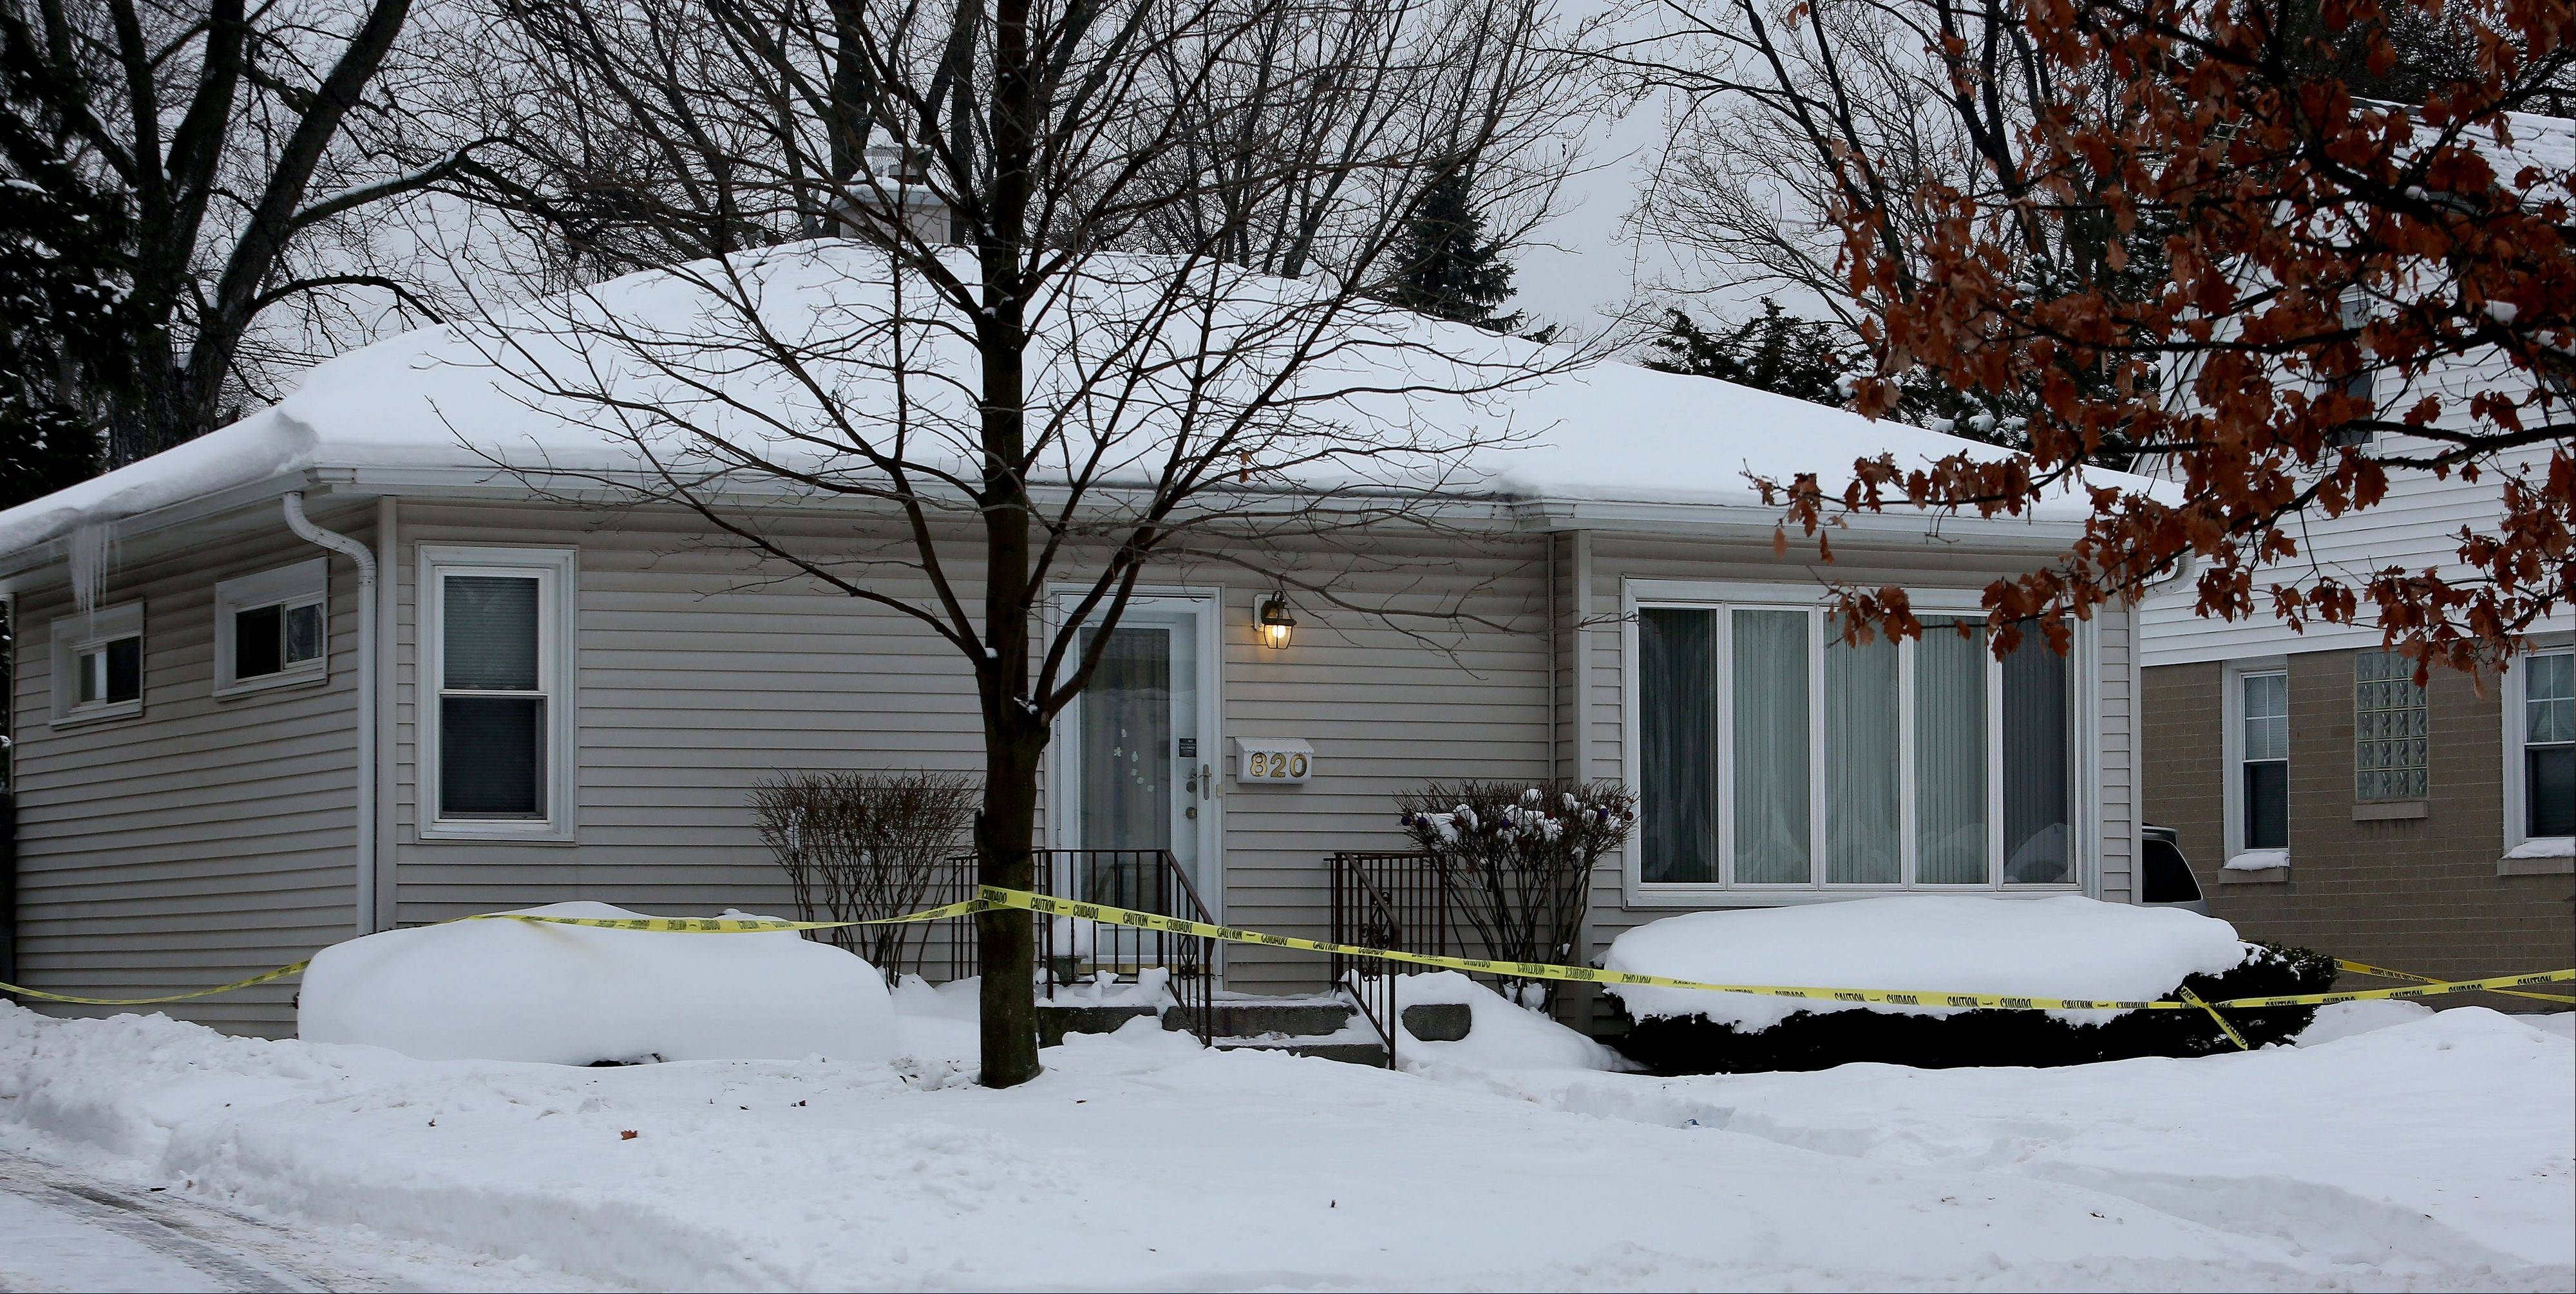 Anka Miscevic, 48, has been charged with murder in the death of her husband, Zeljko Miscevic, 53, who was found stabbed outside this home near Hammerschmidt Elementary School in Lombard.